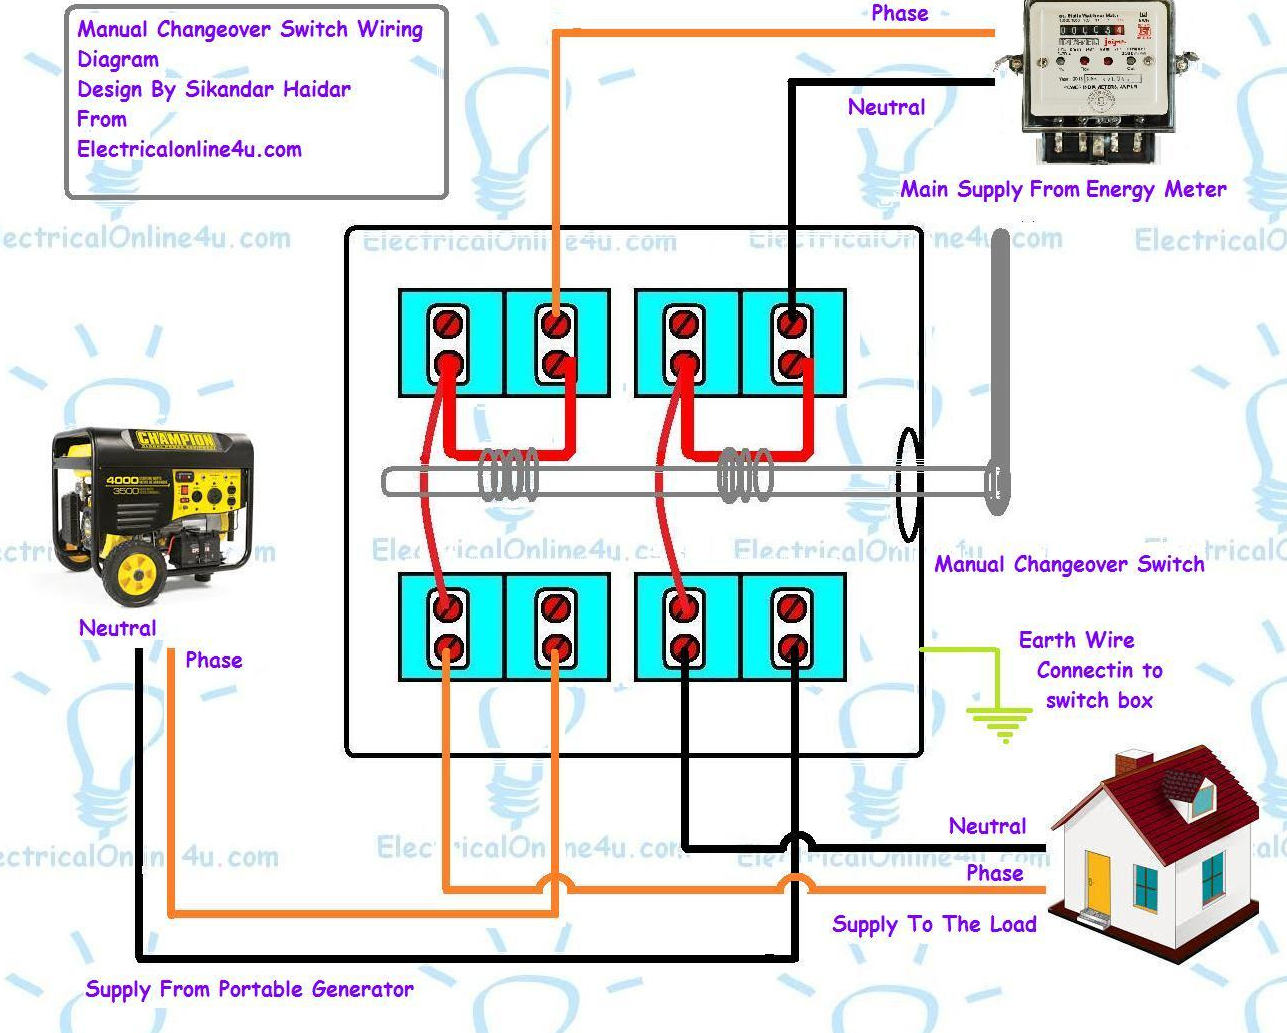 Manual changeover switch wiring diagram for portable generator ... on